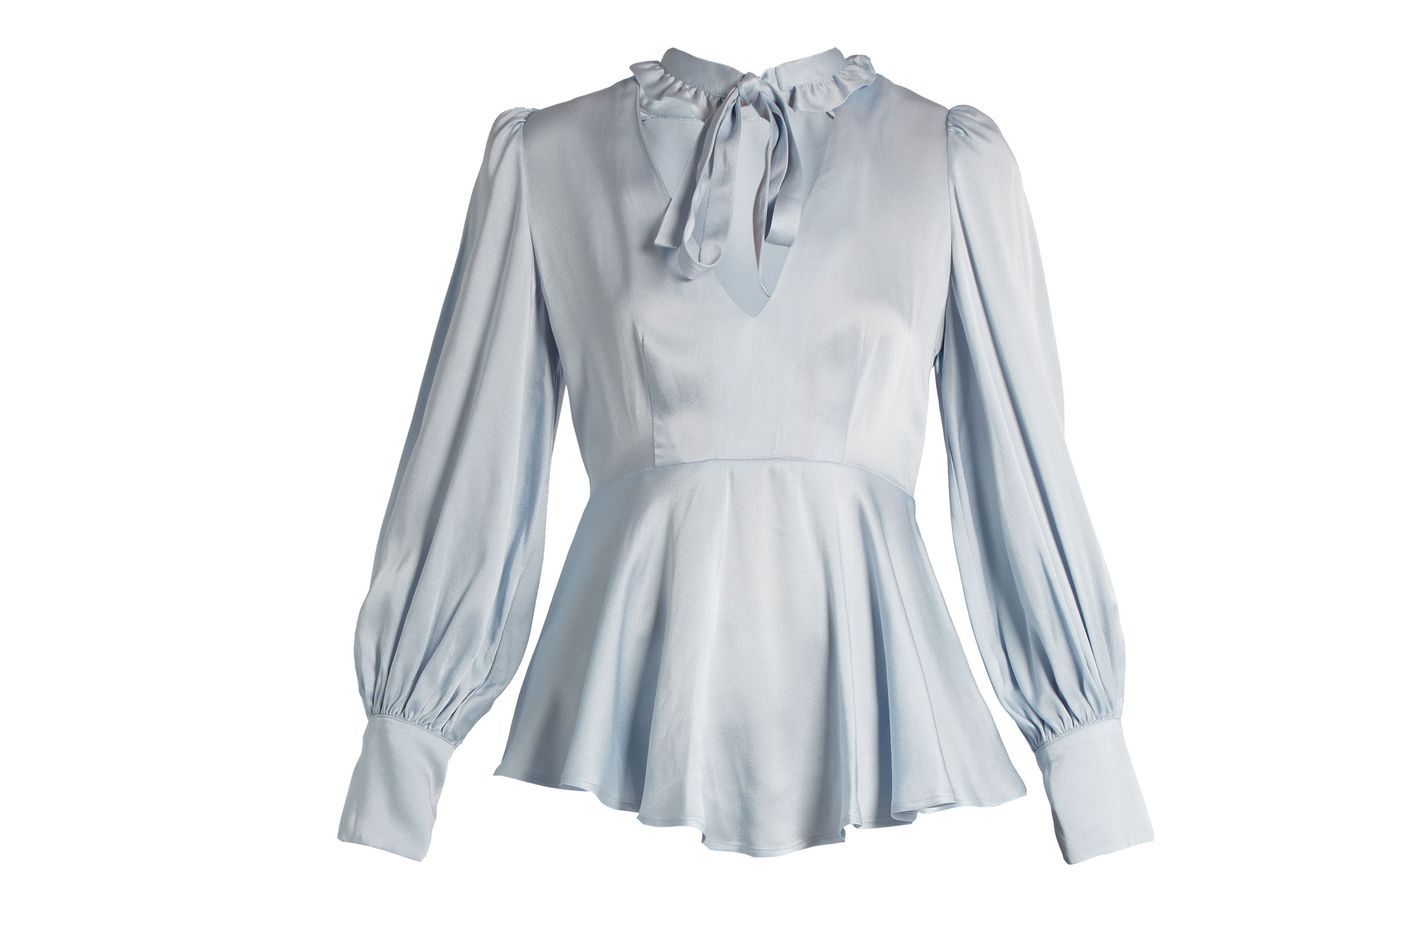 ALEXACHUNG Tie Neck Satin Blouse